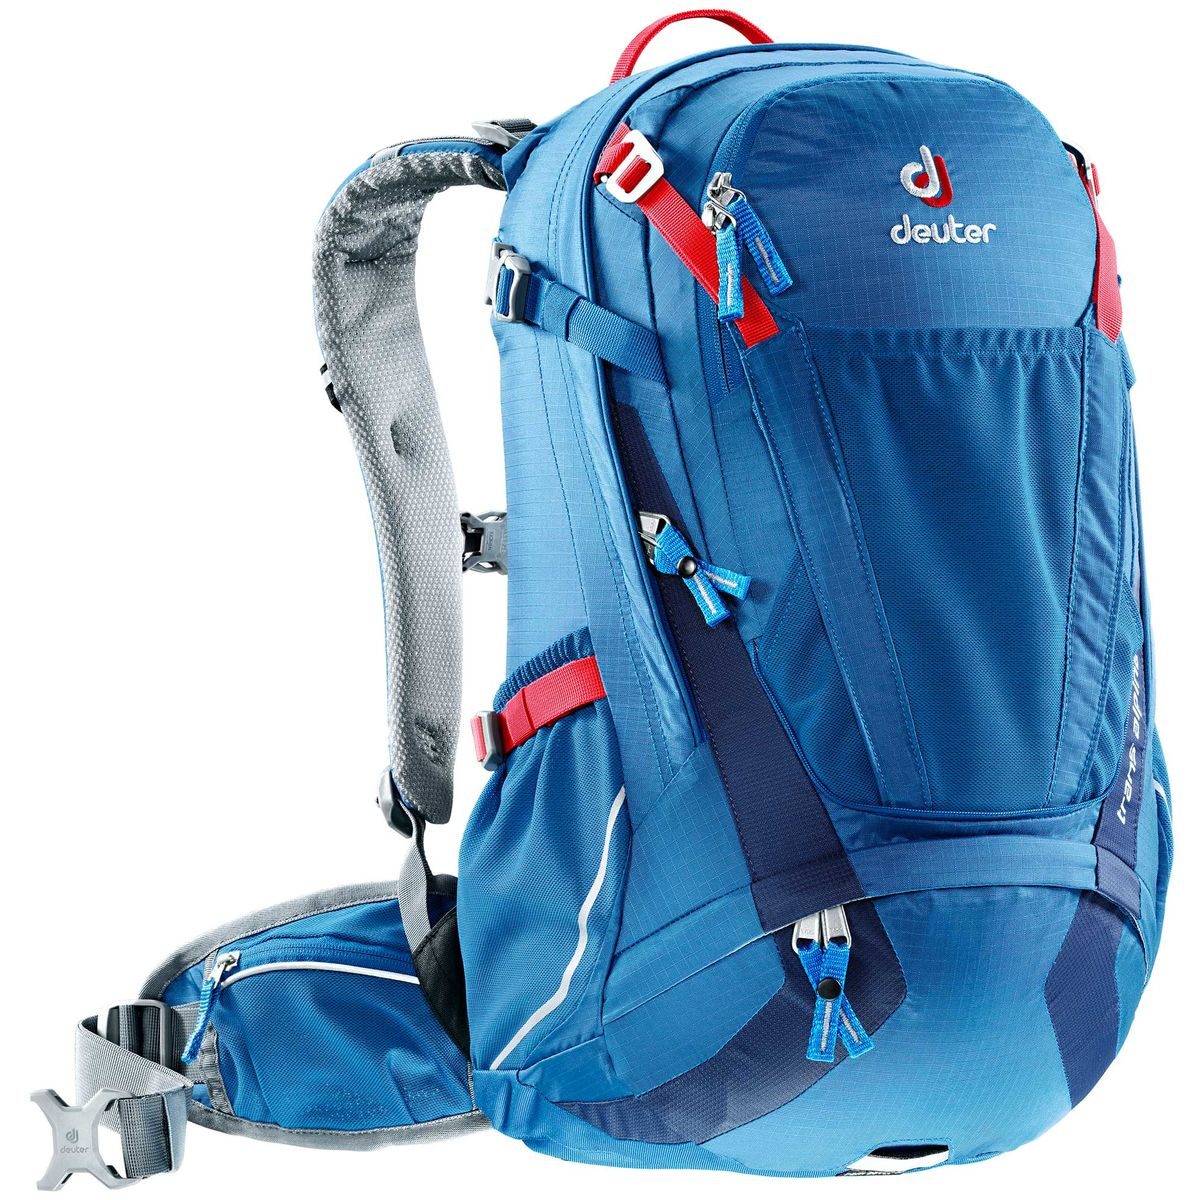 TRANS ALPINE 24 backpack